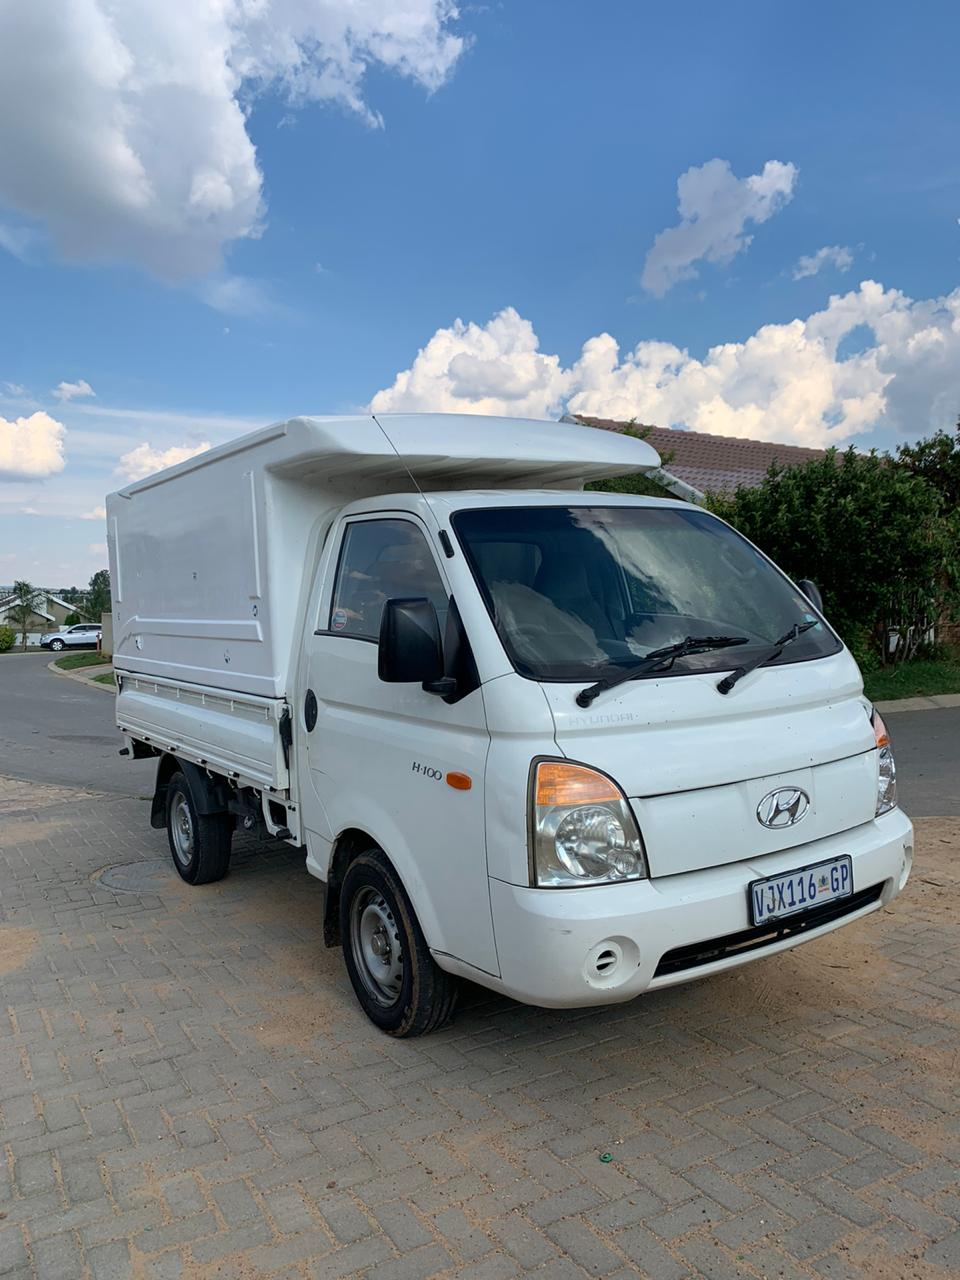 Truck for hire and relocations